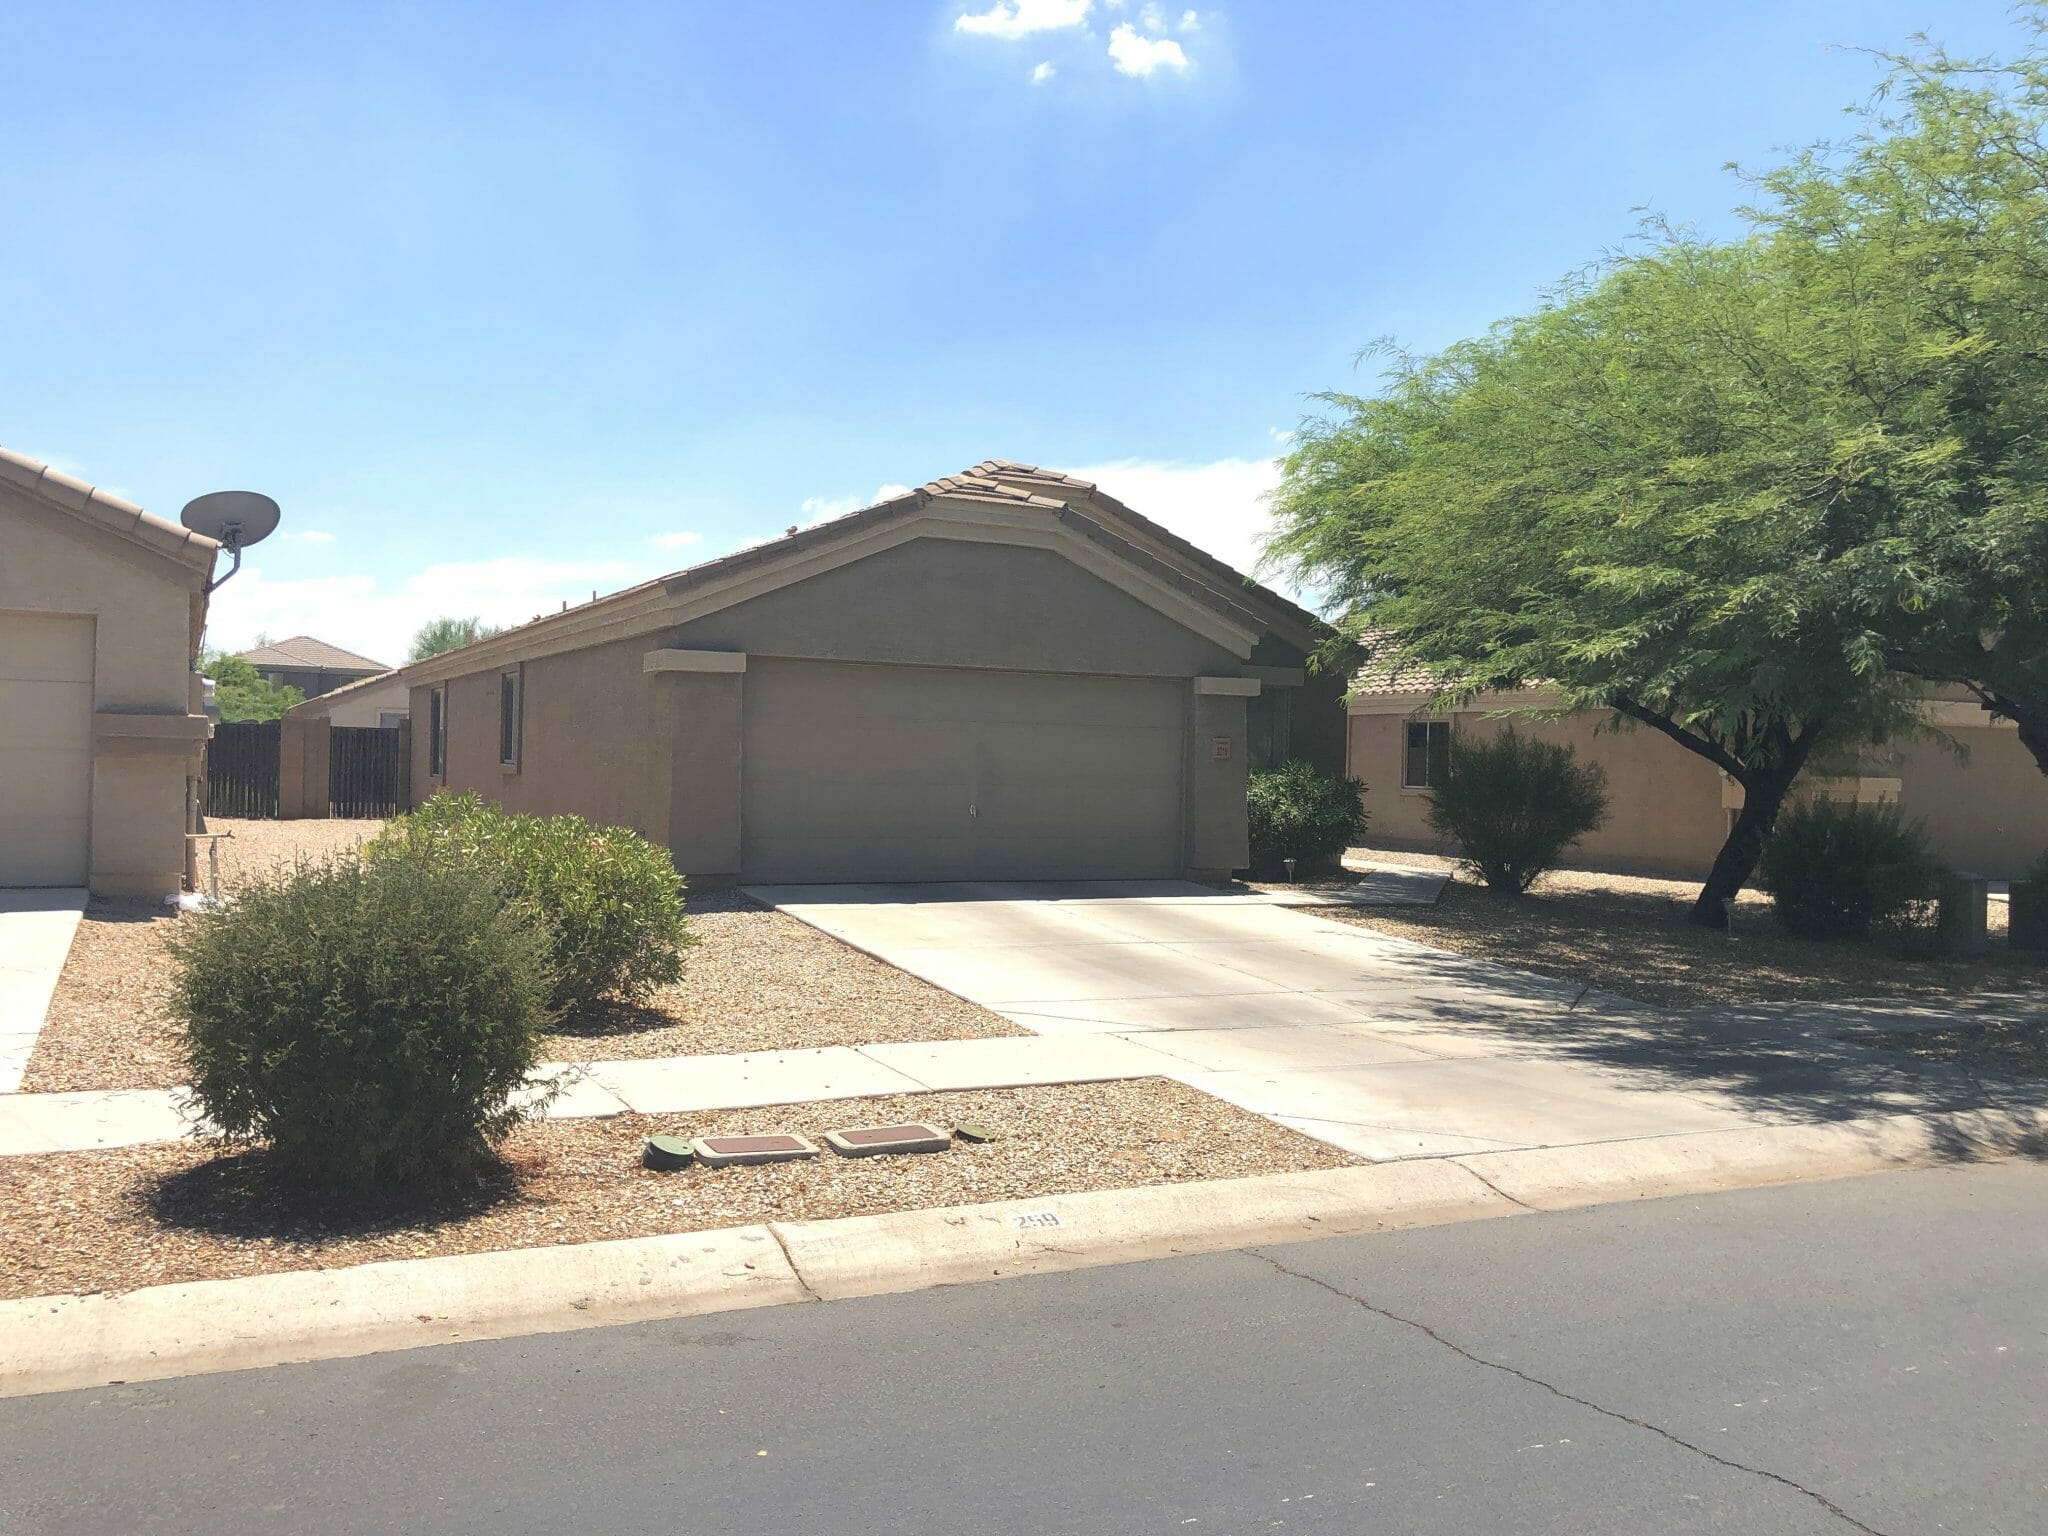 2219 W Pinkley Ave, Coolidge, AZ 85128